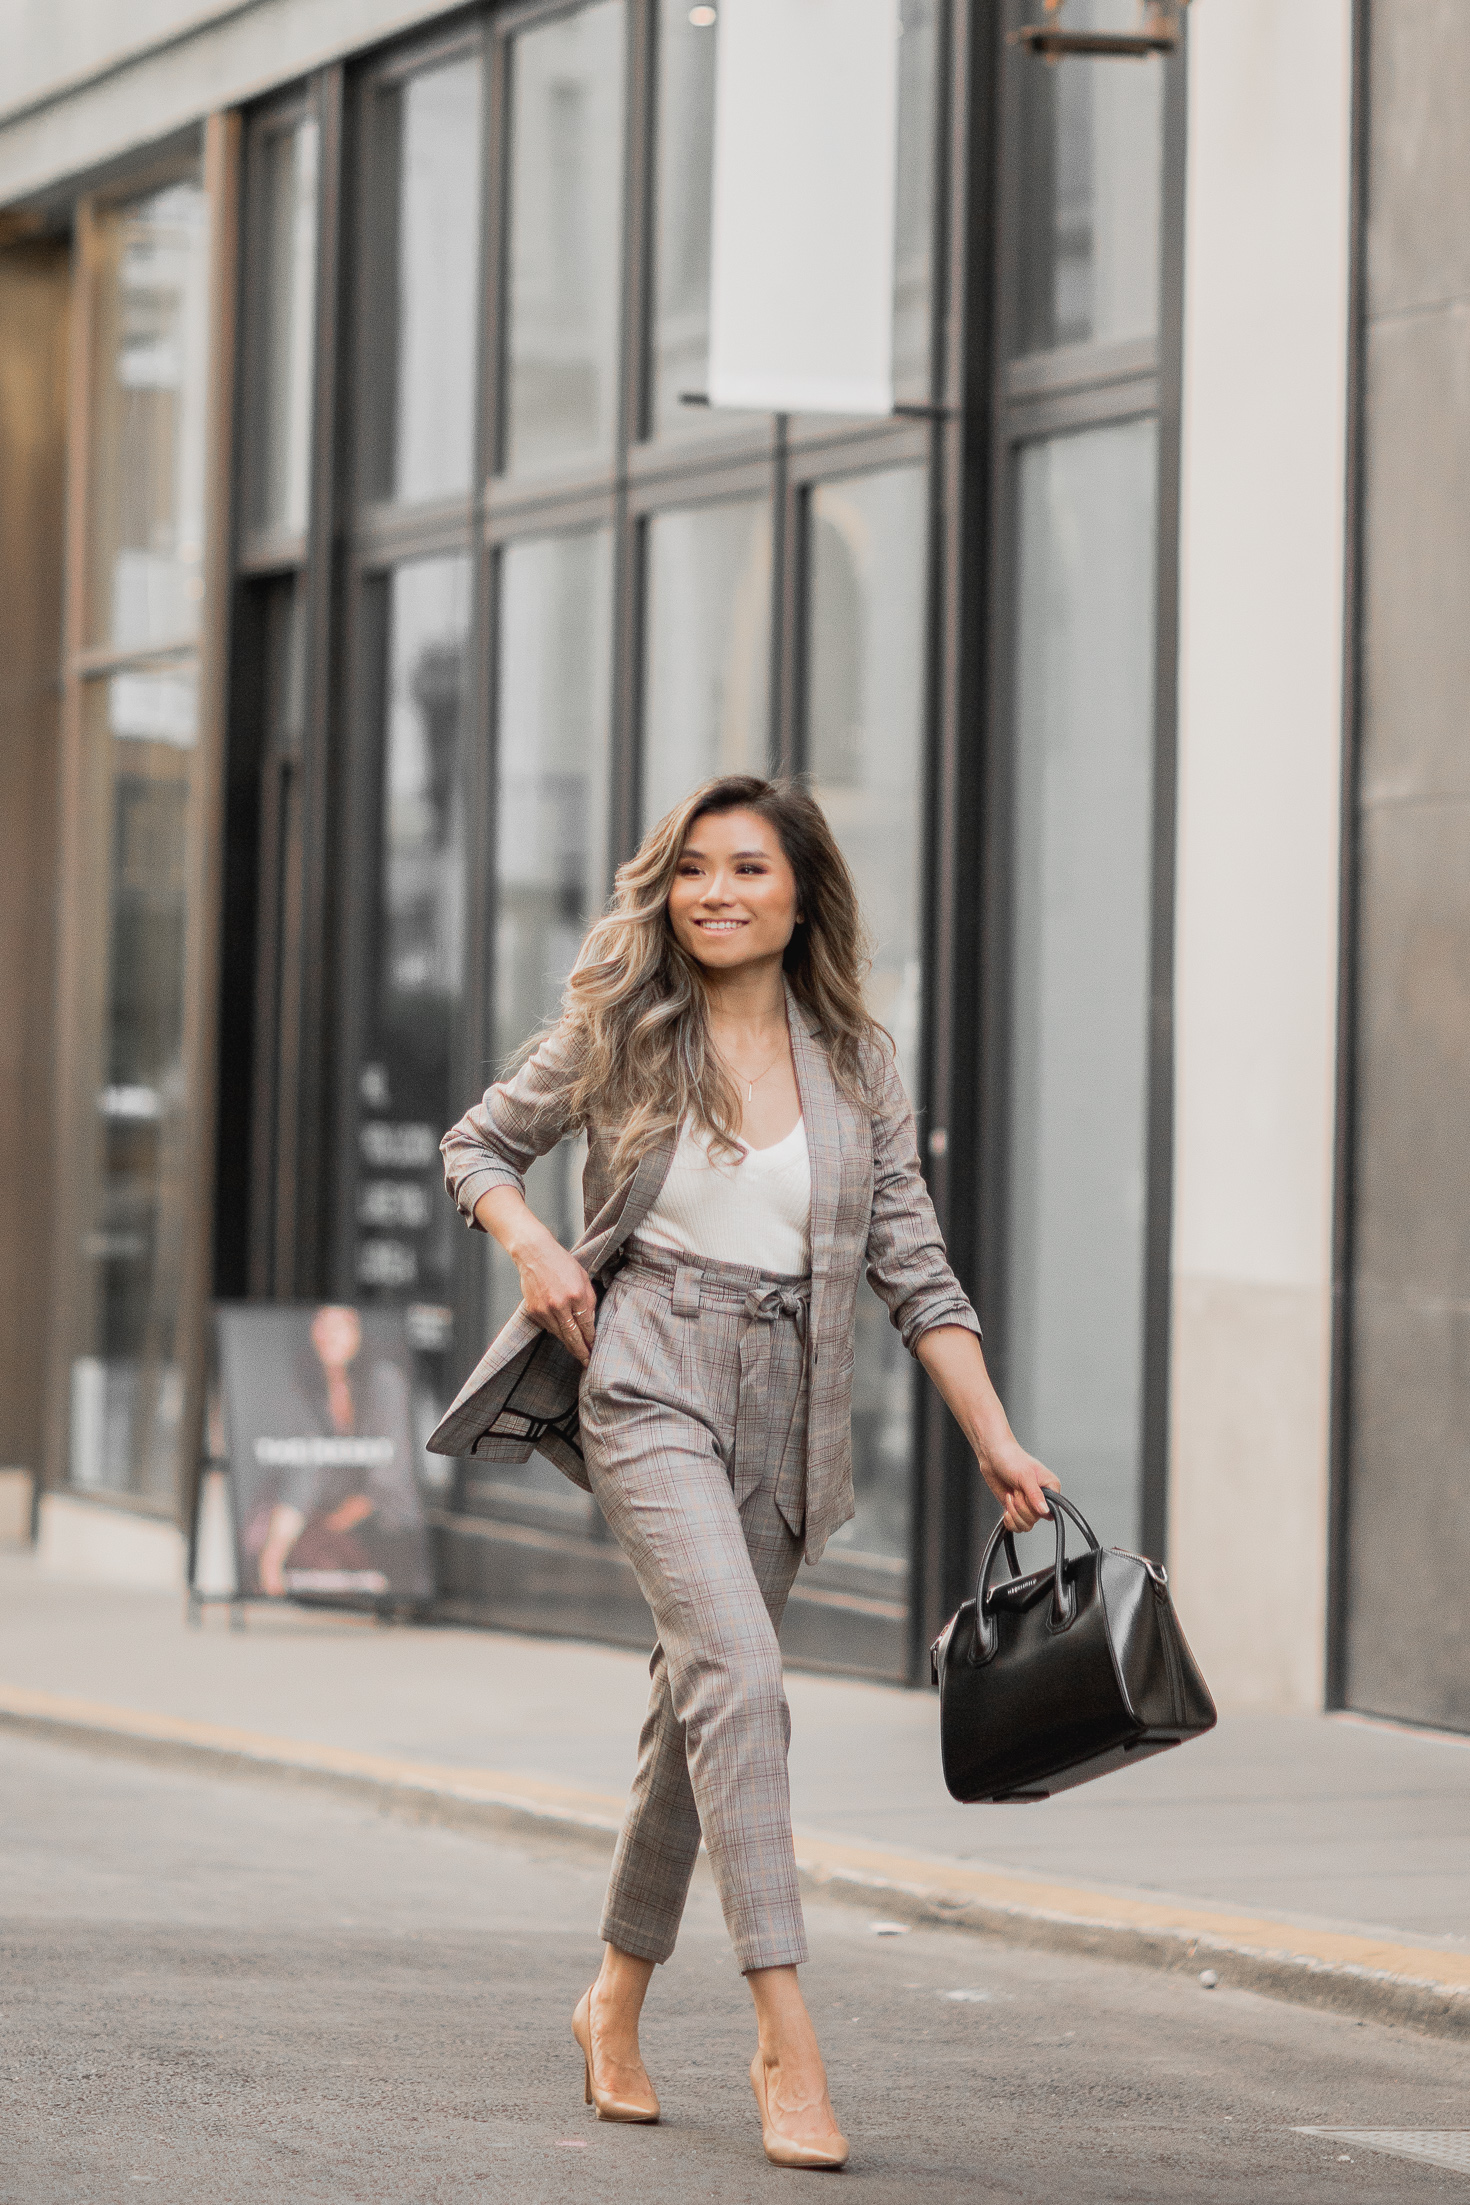 Fashion Blogger Miss Louie wearing fall work outfit with express blazer and pants with Givenchy Small Antigona Bag and Sam Edelman Hazel pumps